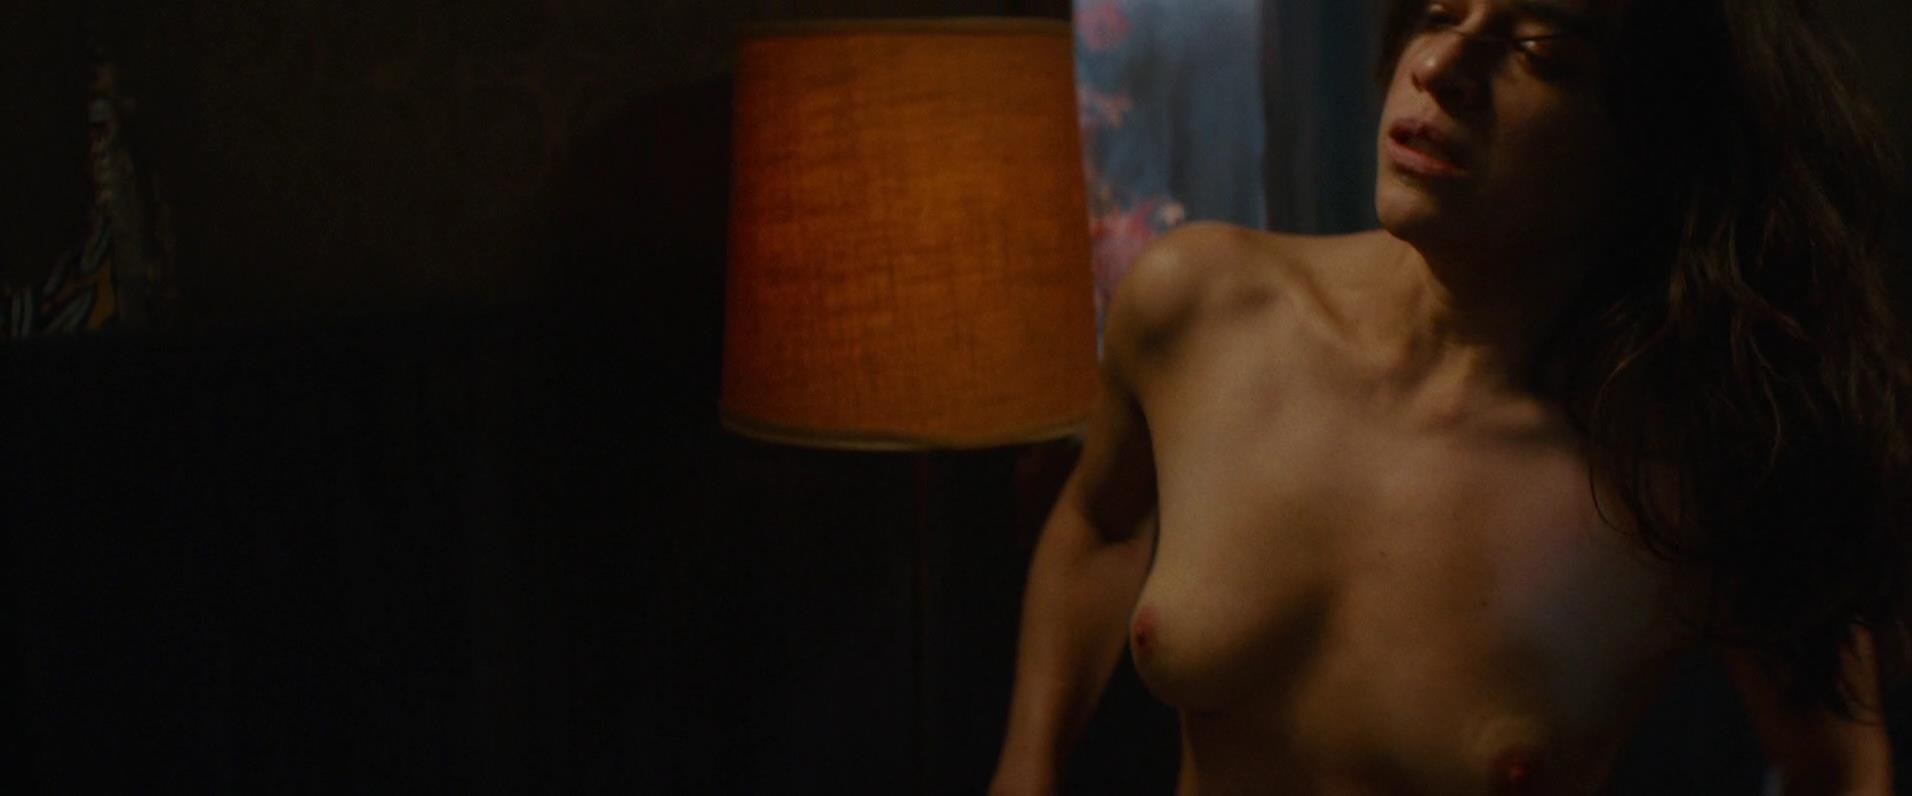 Michelle rodriguez nude sex opinion you